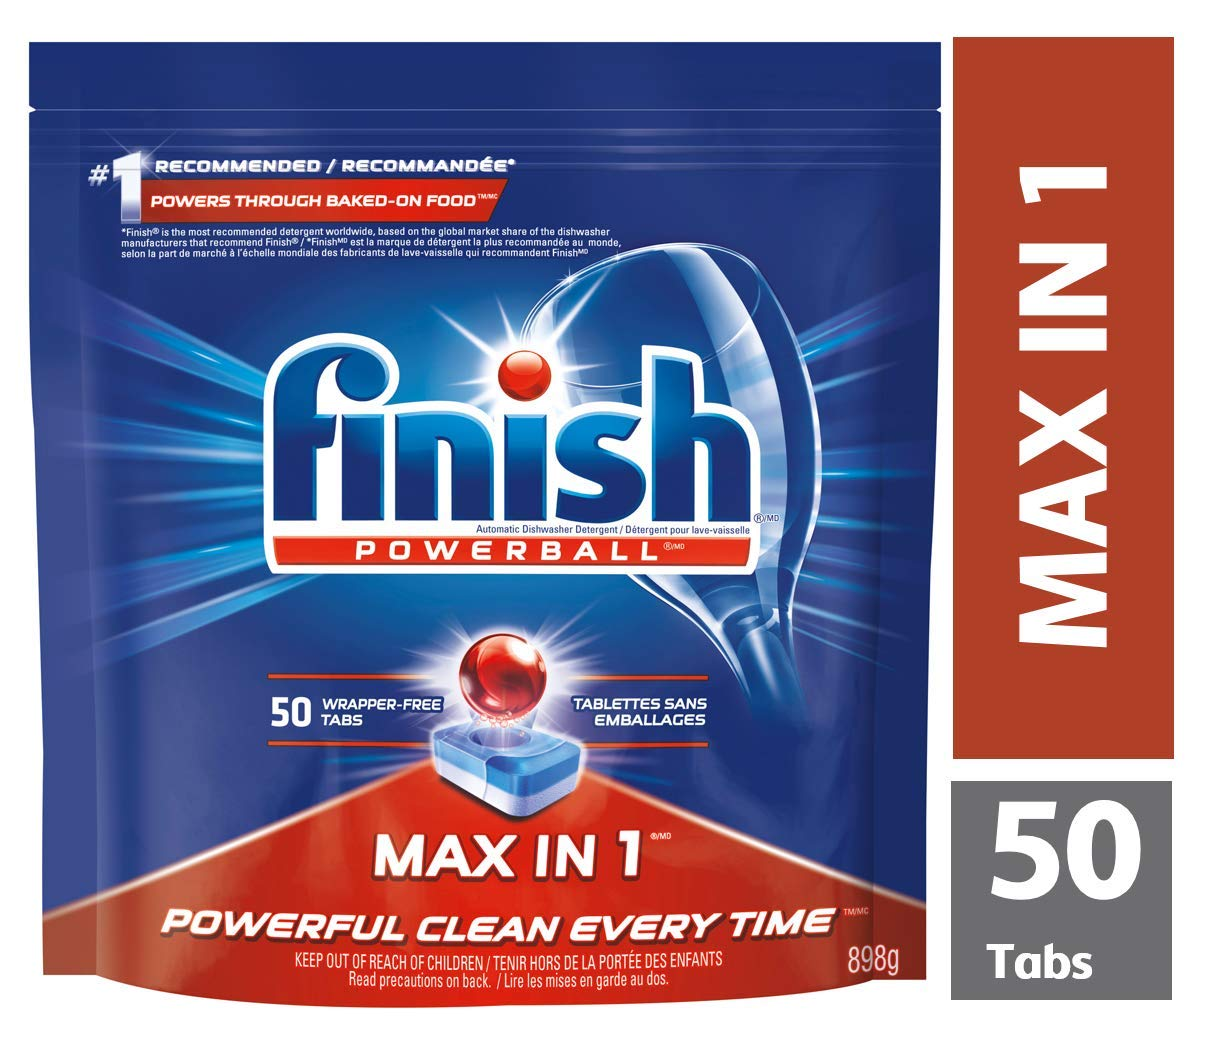 Finish Dishwasher Detergent, Max in 1 Powerball Super Charged, Power and Free, 50 Tablets, Less Harsh Chemicals